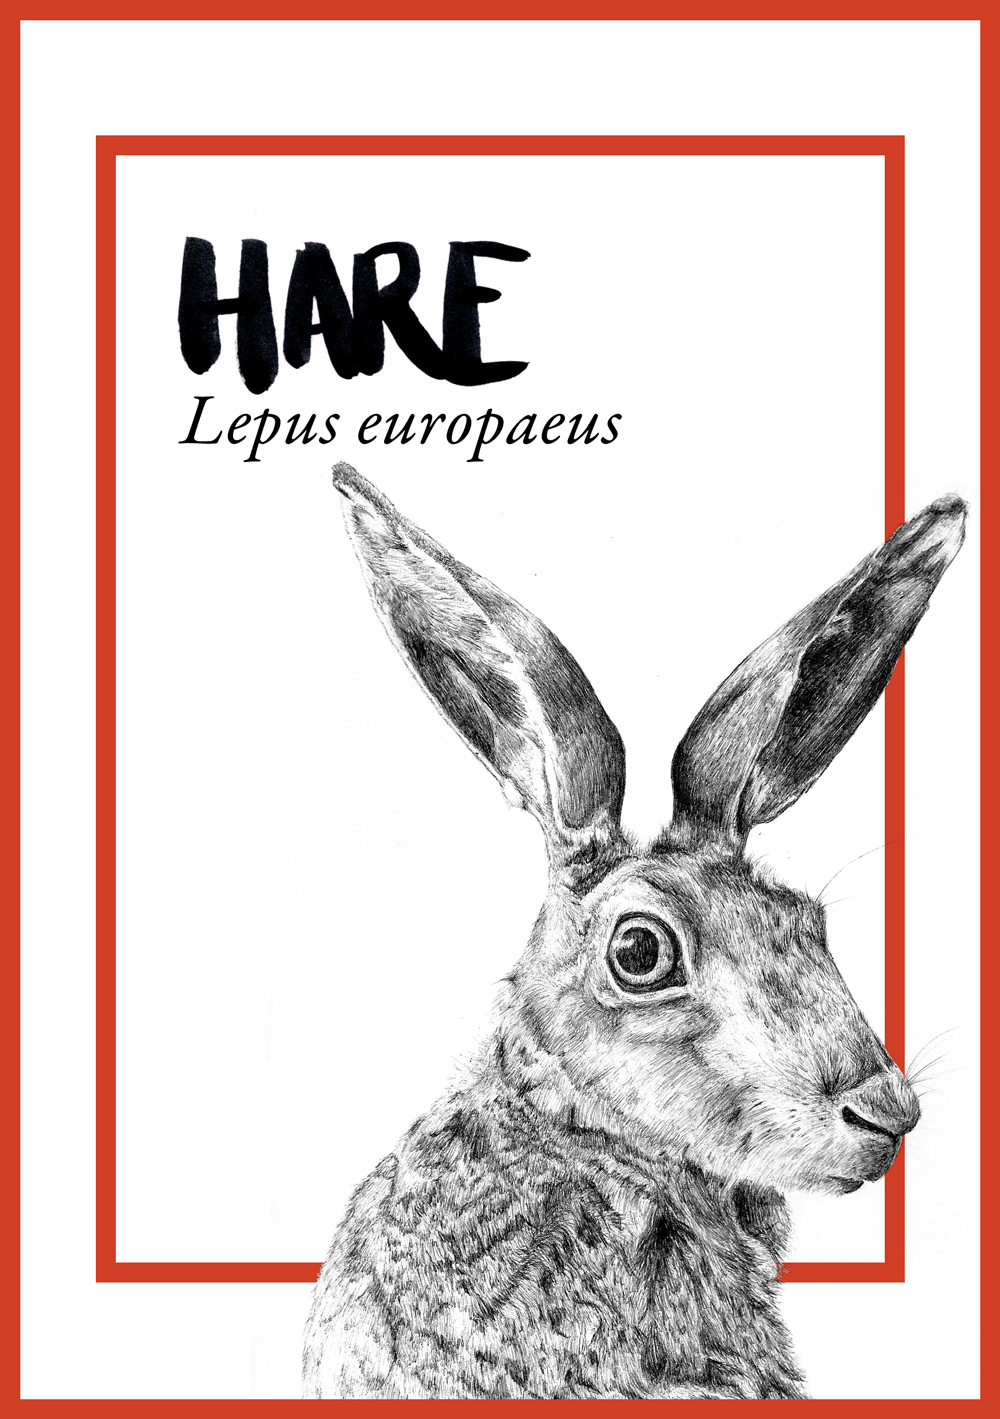 JC-CommissionsTableAnimals-hare.jpg